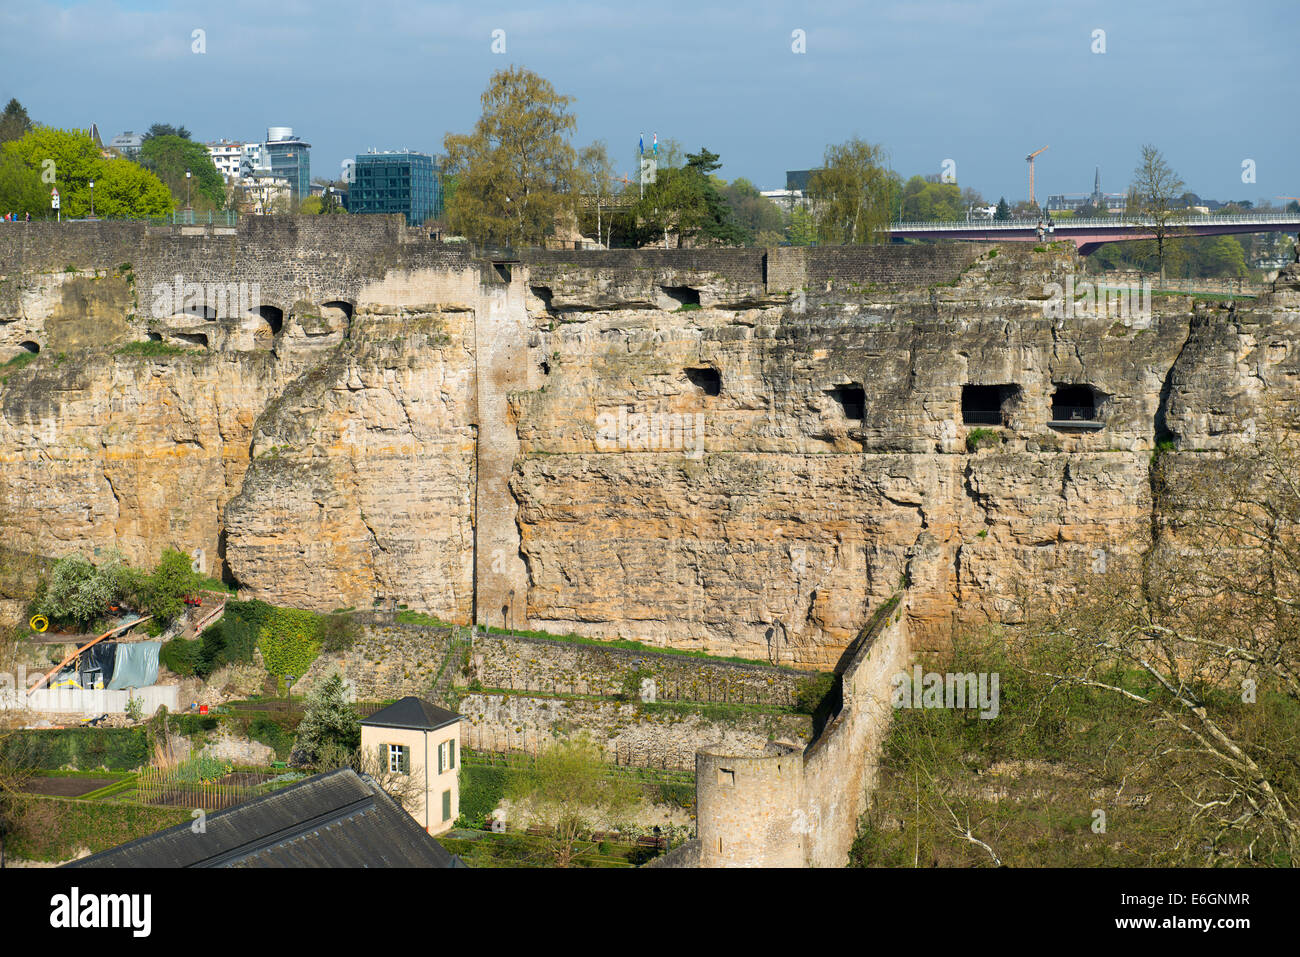 Luxembourg casemates - Grand Duchy of Luxembourg - Stock Image